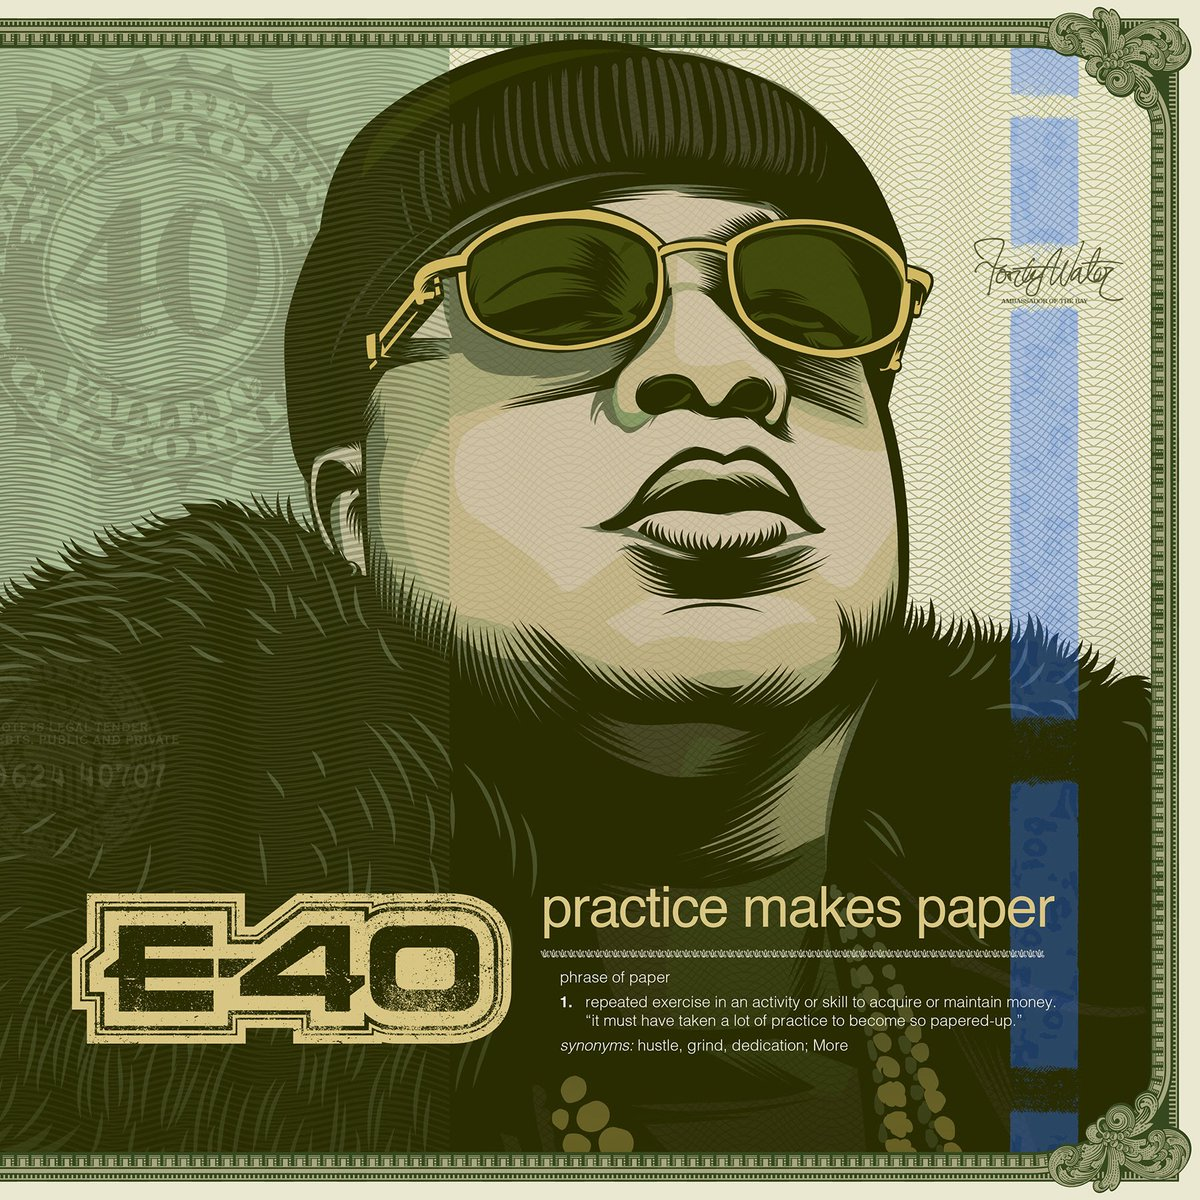 E-40 New solo Album PRACTICE MAKES PAPER 07/26/19 🔥🔥🔥🔥🔥🍿